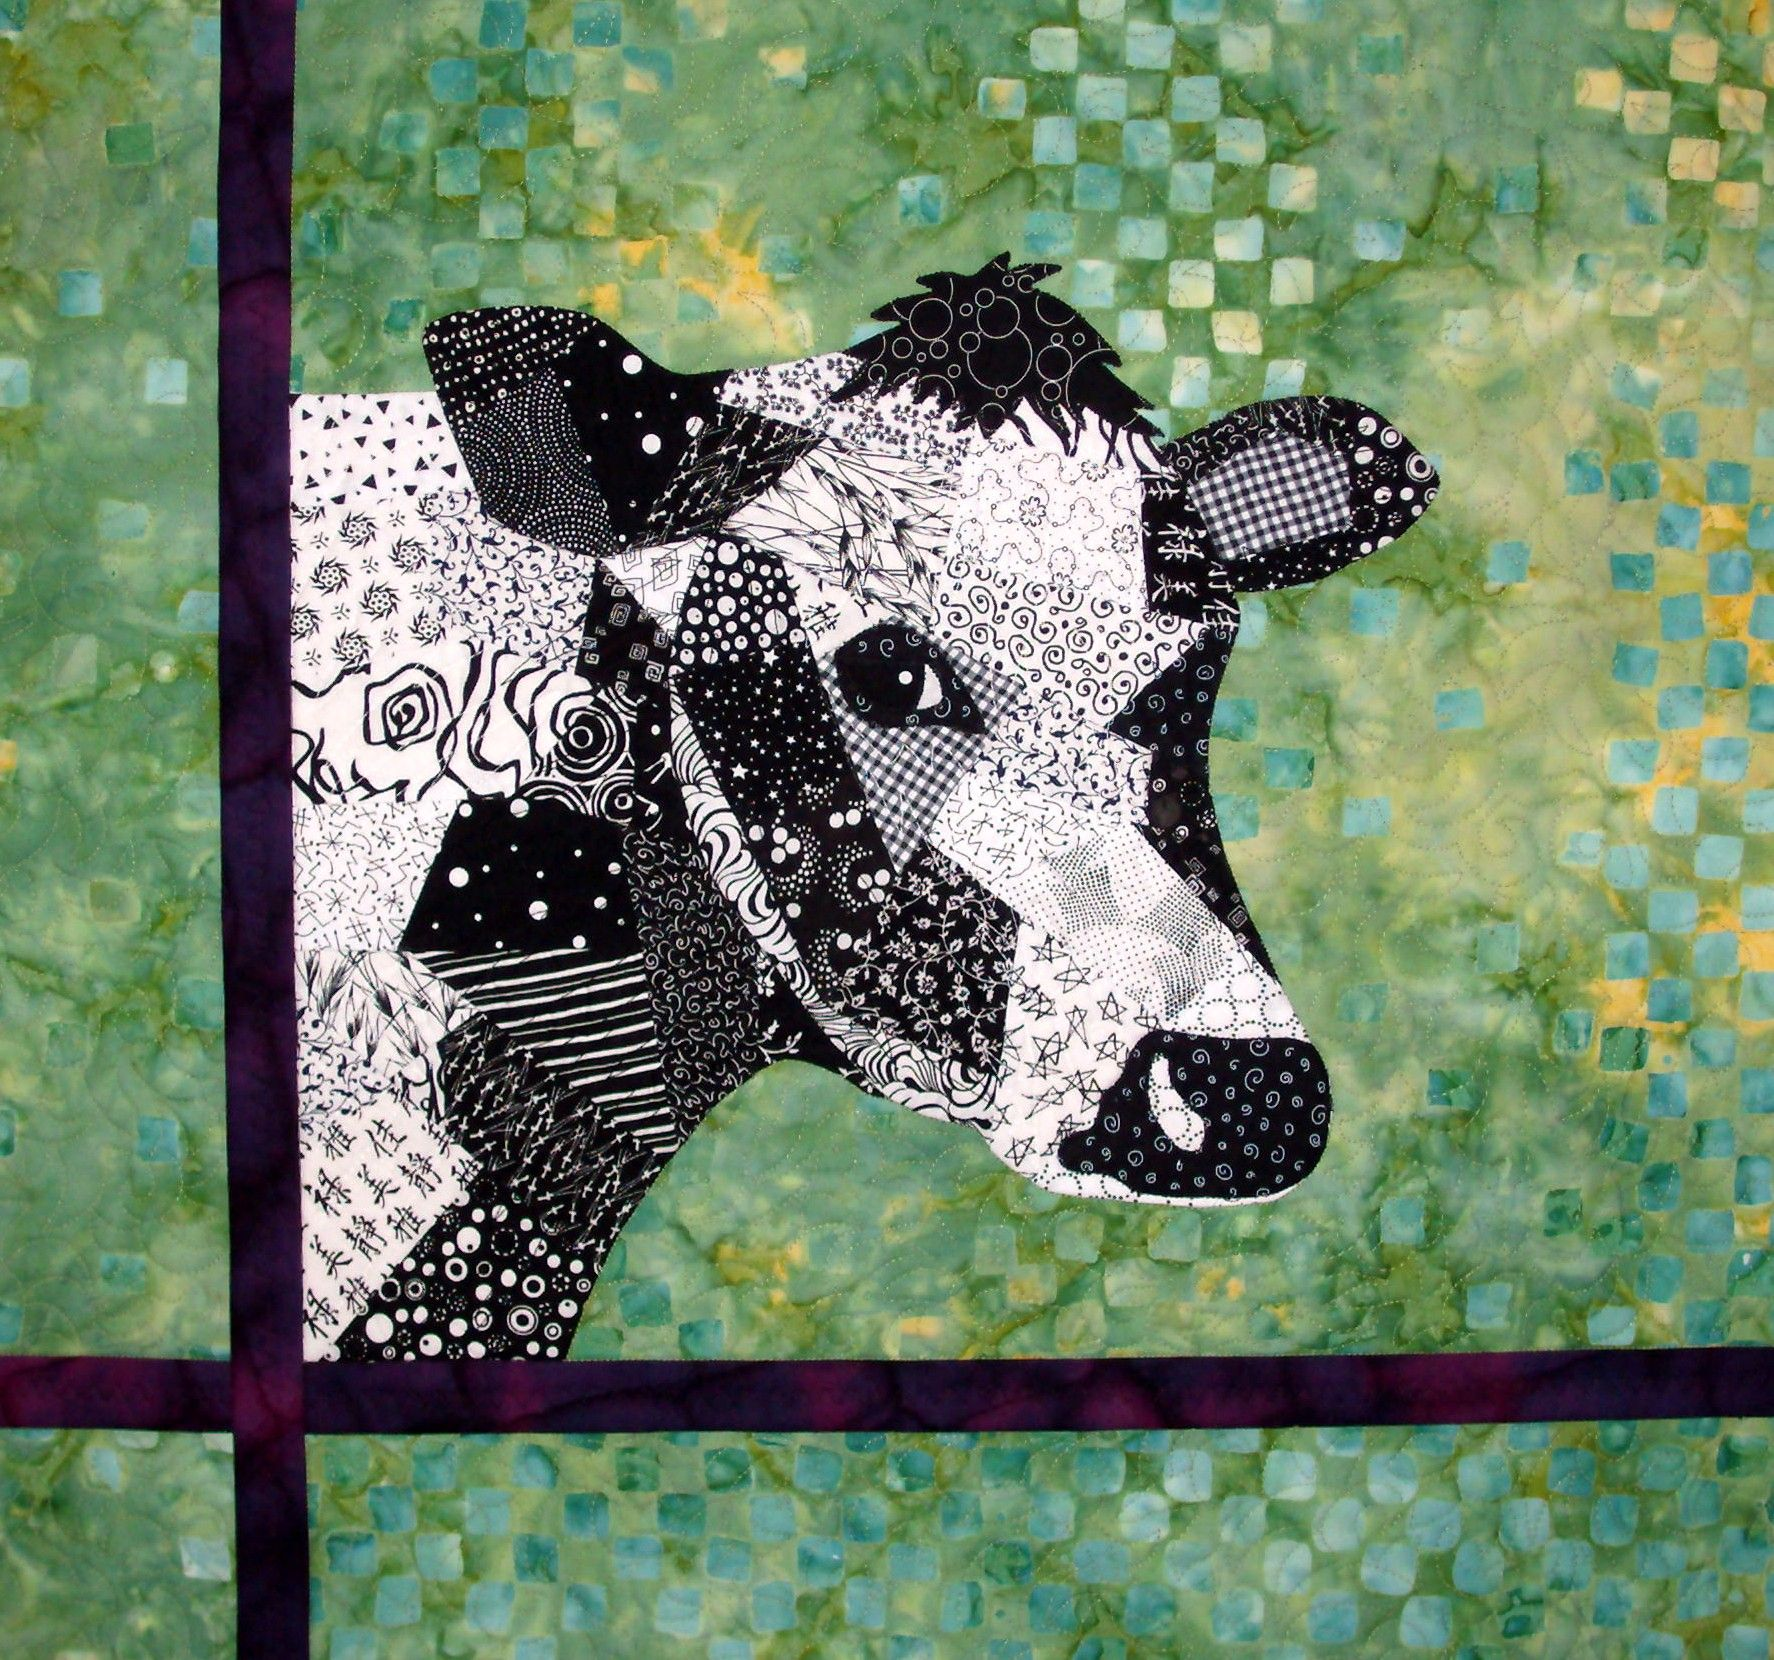 Kuh Malen Cow Quilt Amazing Quotpainting Quot And Quotshading Quot Using Fabric